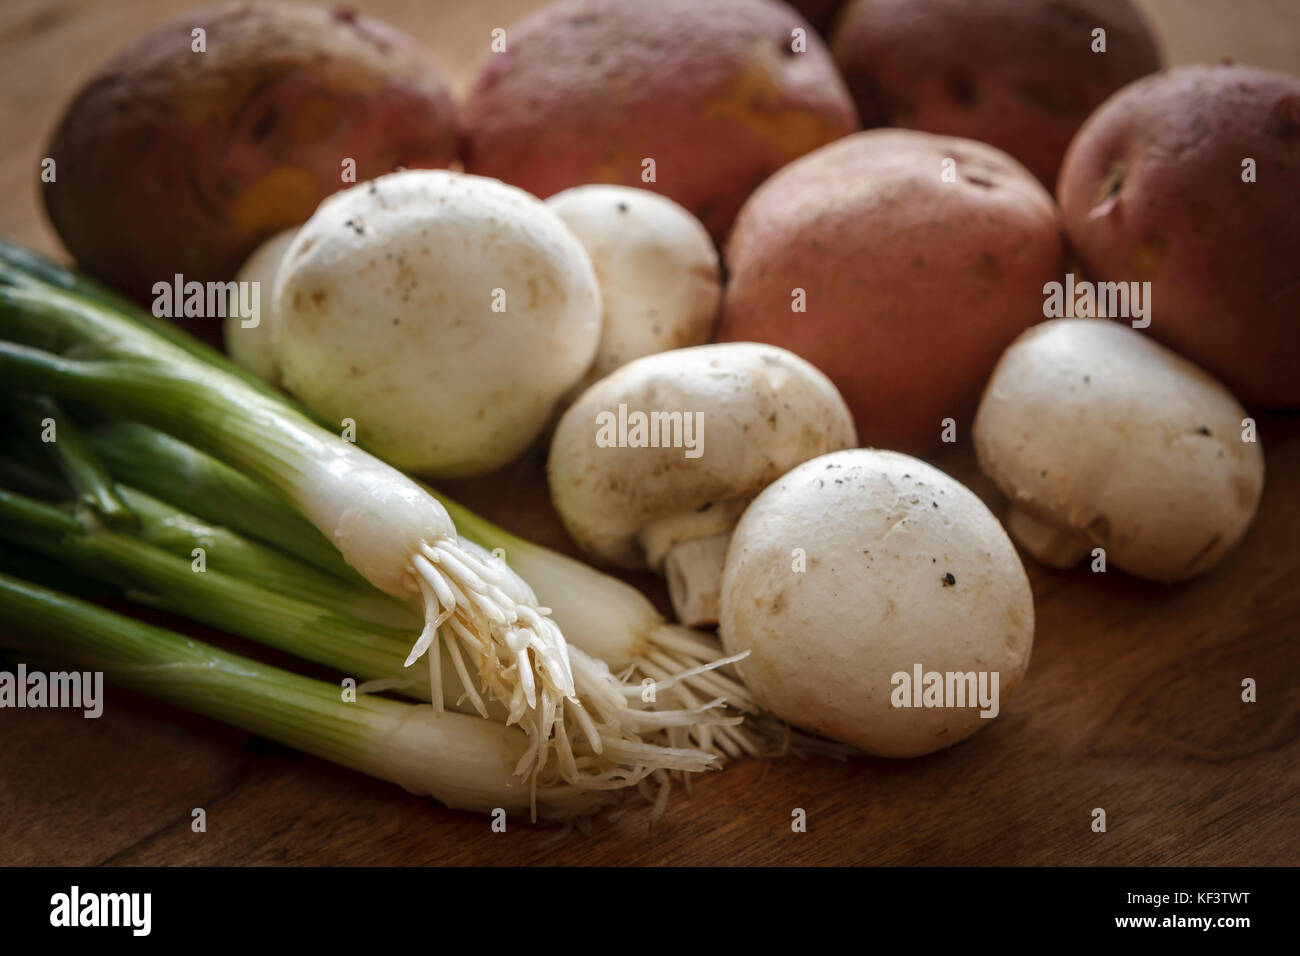 A close up image of vegetables like green onions, mushrooms, and red potatoes used in cooking. - Stock Image